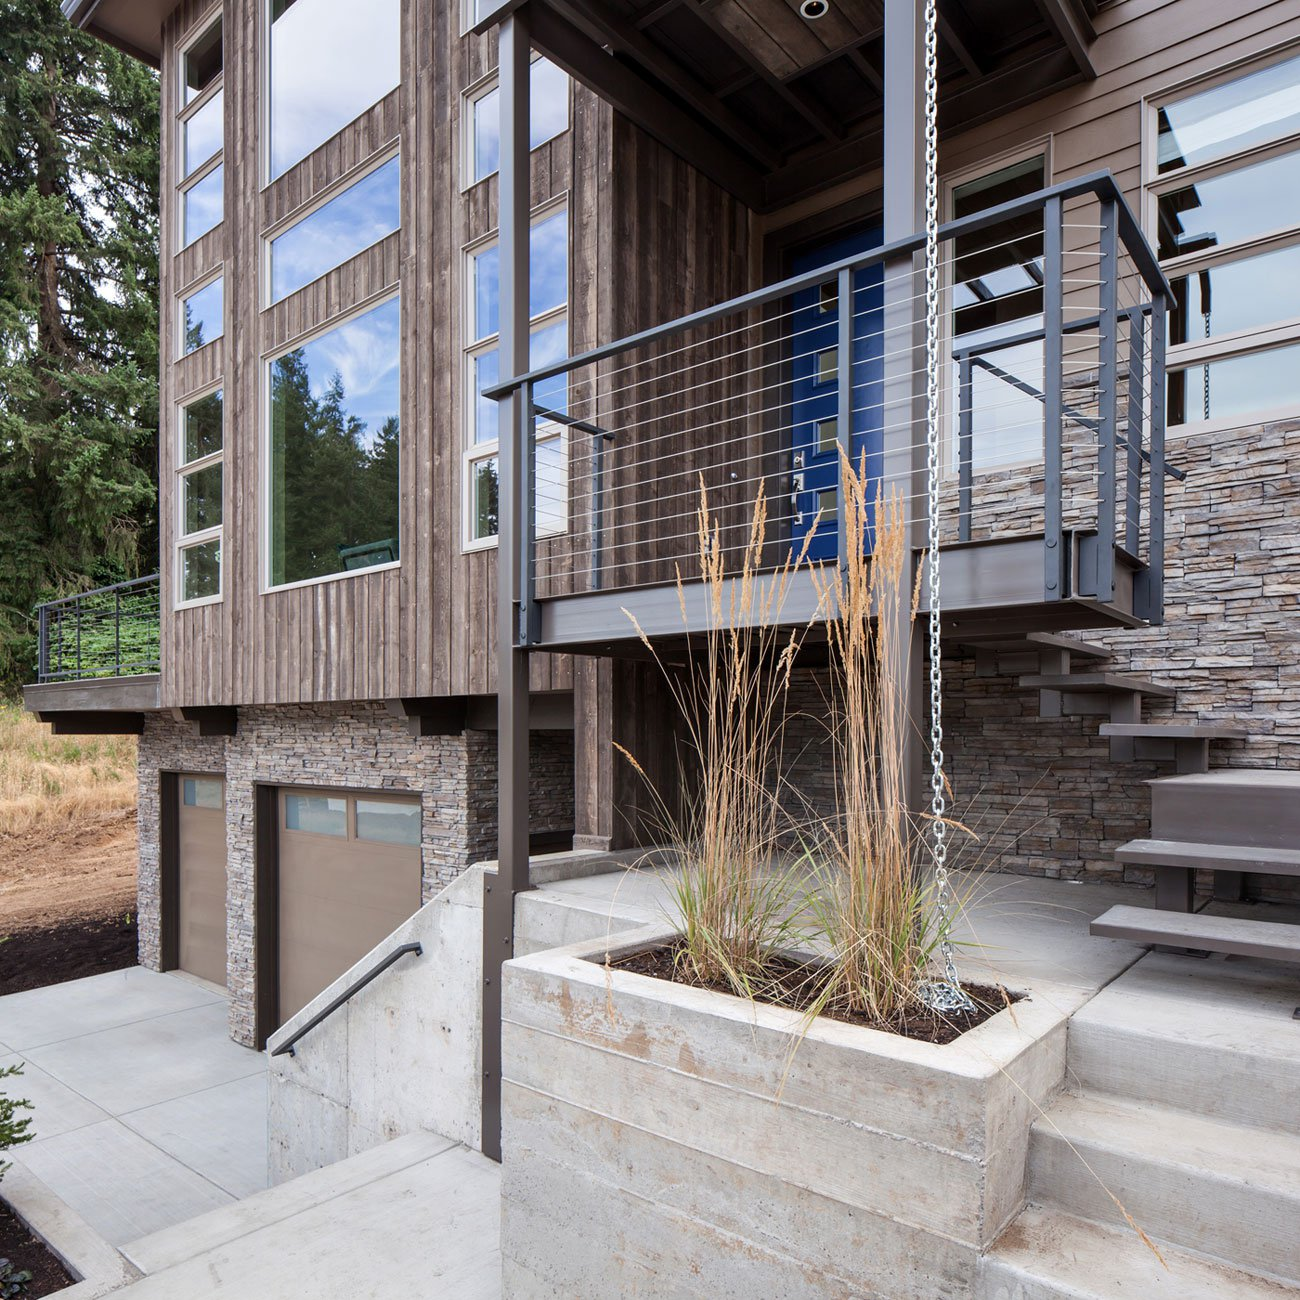 Modern Home In Eugene Oregon By Jordan Iverson Signature: 35TH PLACE Crest Meadows Residence By Jordan Iverson